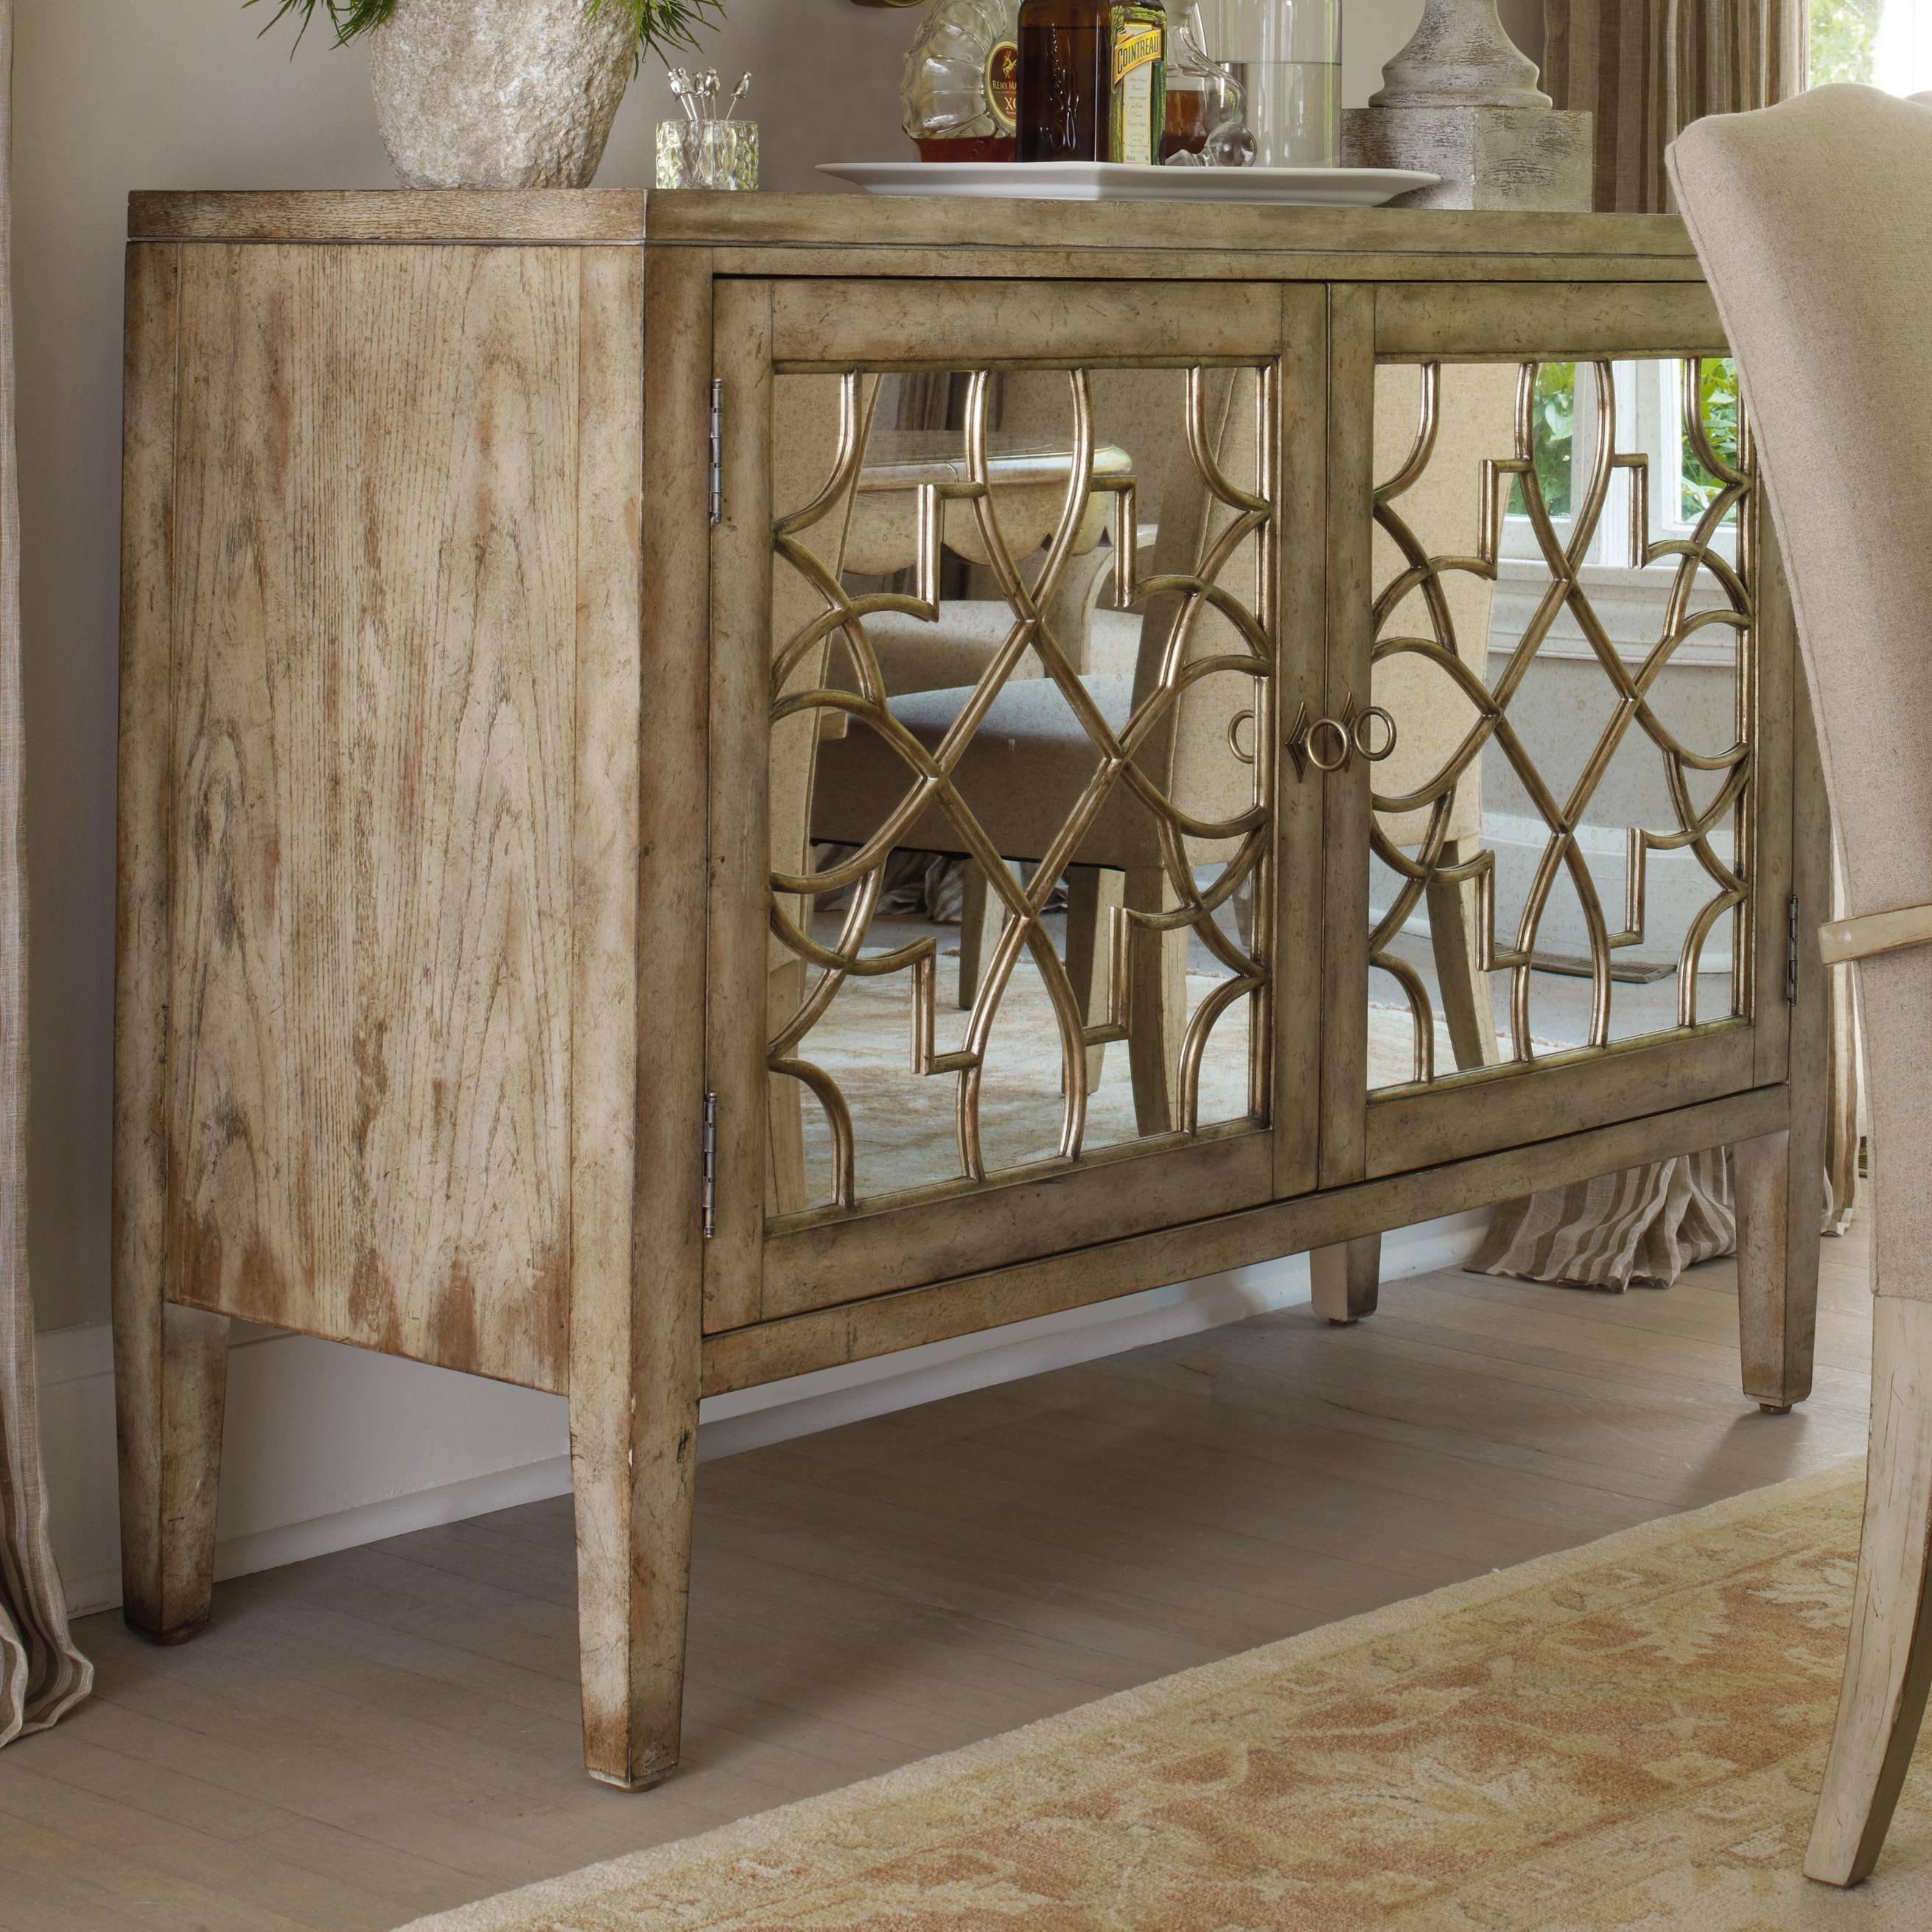 Hooker Furniture Sanctuary Two Door Mirrored Console - Ahfa for Mirrored Buffet Sideboards (Image 6 of 15)